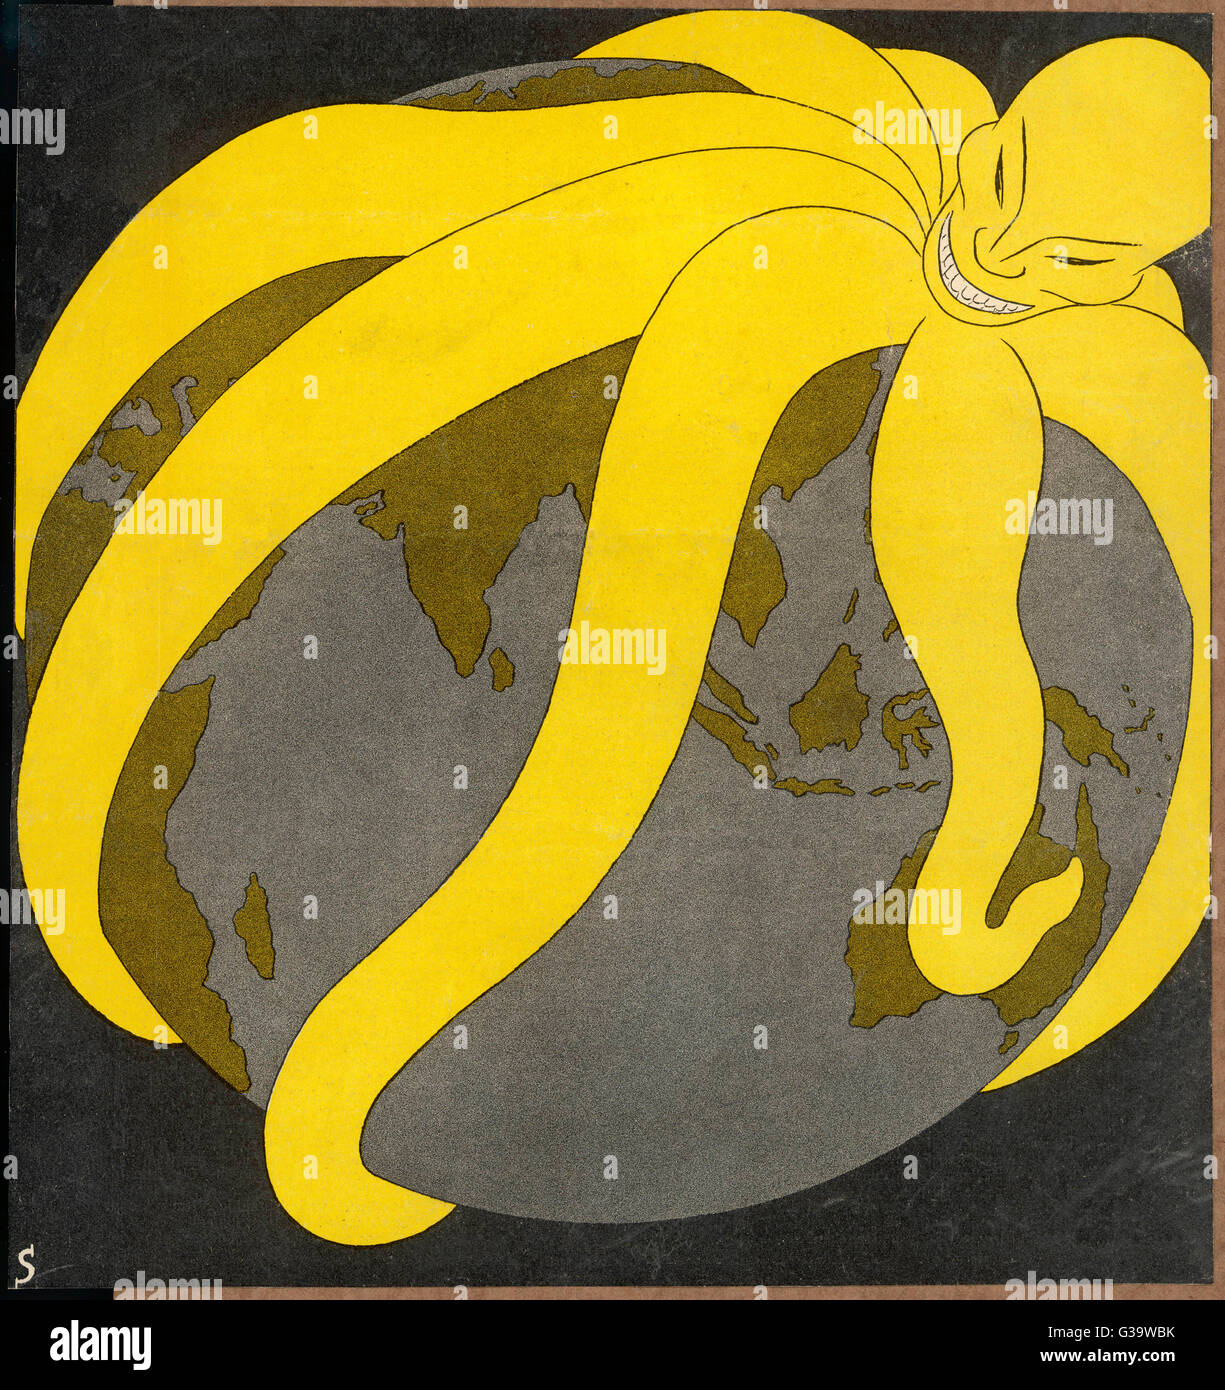 The Japanese 'Yellow Peril' -  a paranoid comment on Japan's  expansionism.        Date: 1935 - Stock Image